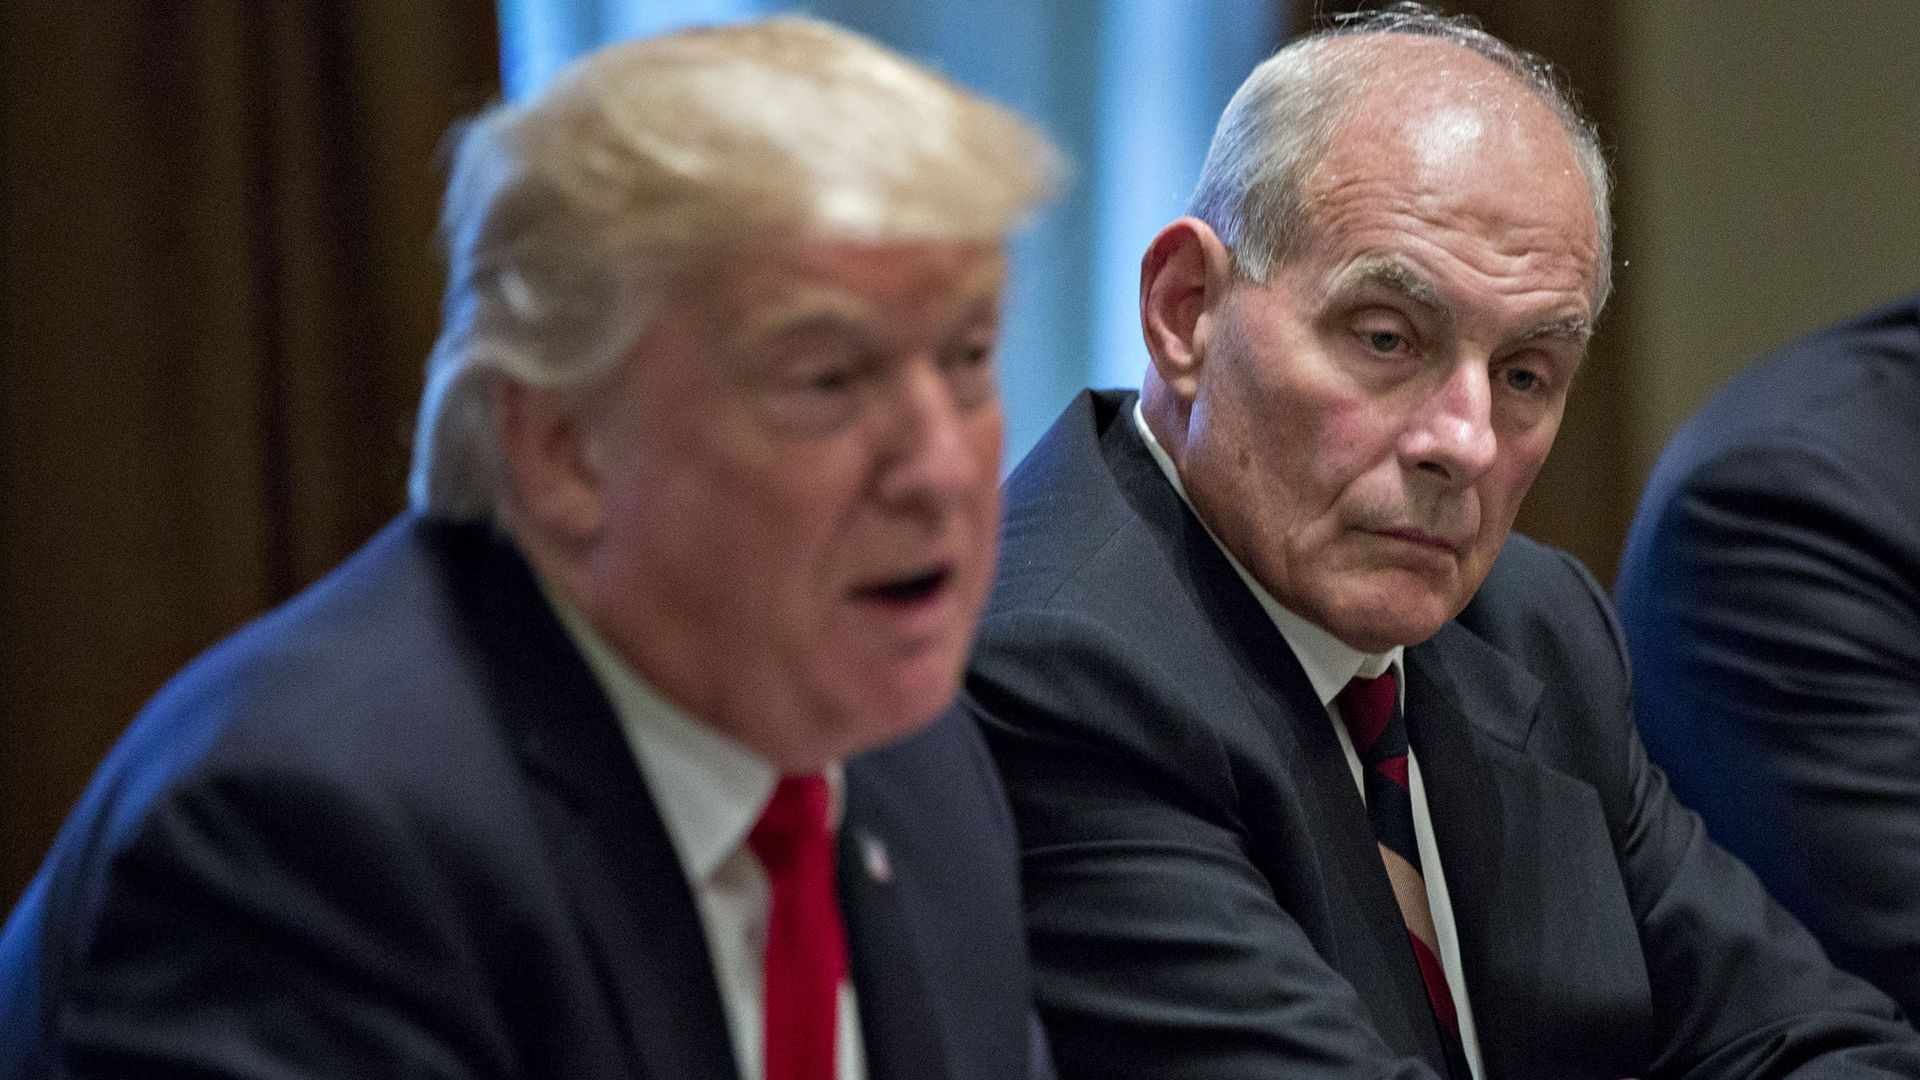 John Kelly looks on while President Trump speaks